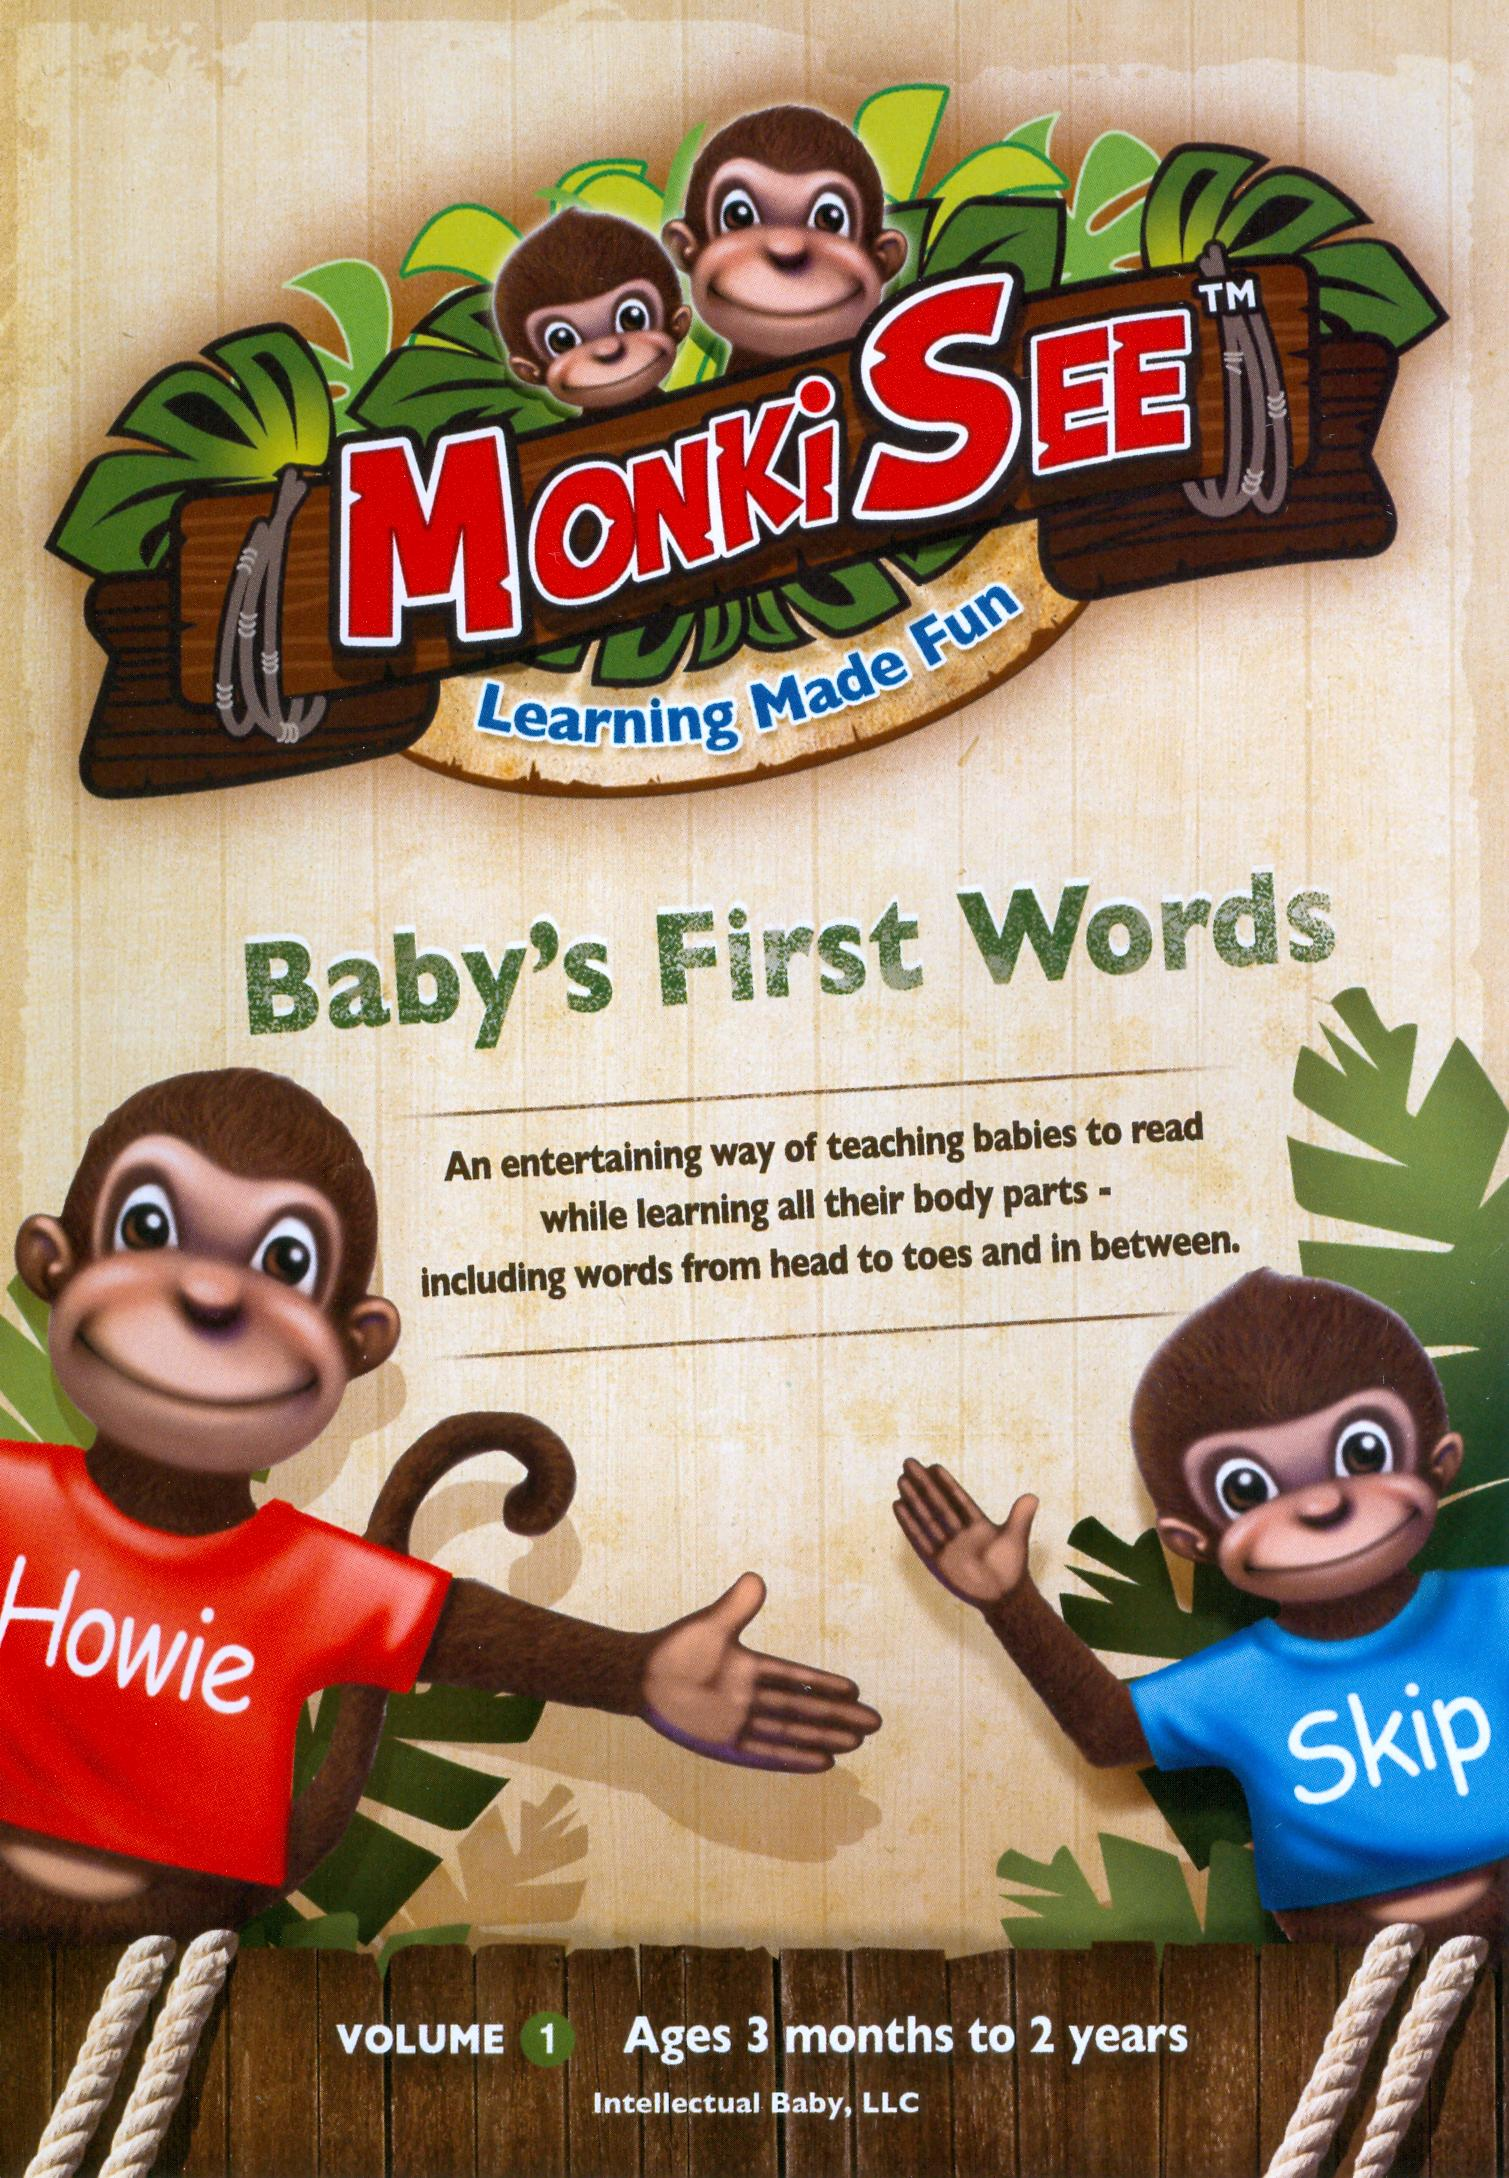 MonkiSee: Baby's First Words